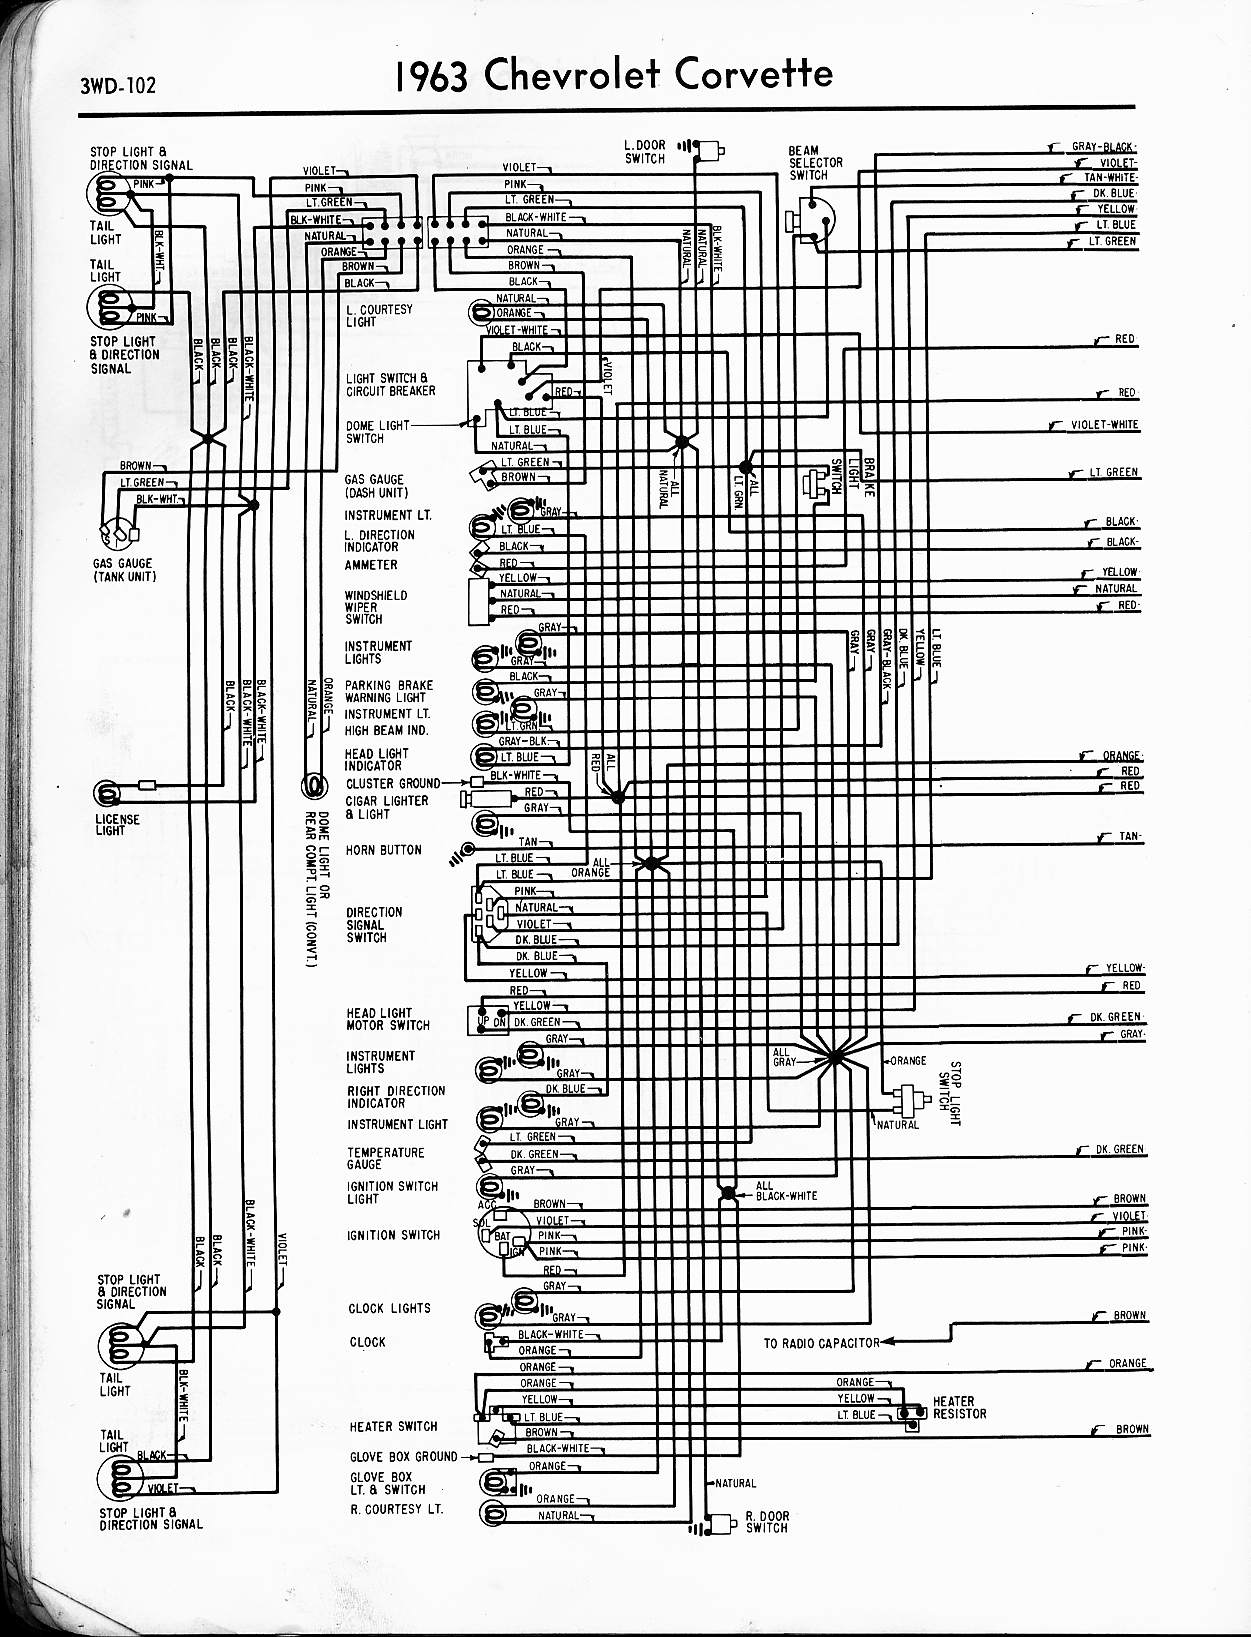 MWireChev63_3WD 102 57 65 chevy wiring diagrams 66 Corvette at mifinder.co